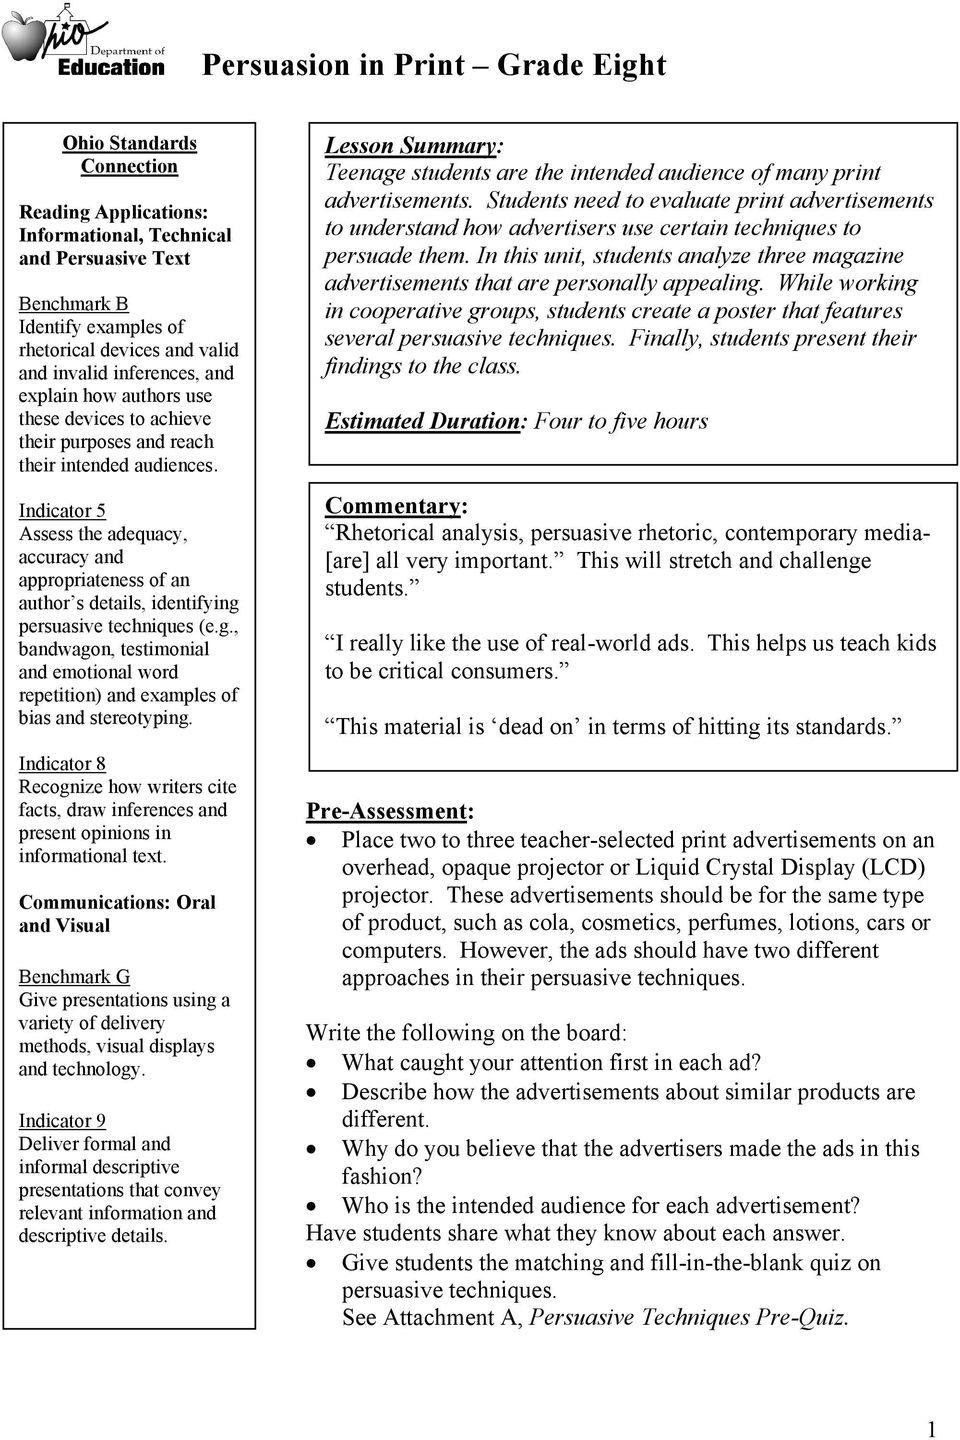 Indicator 5 Assess the adequacy, accuracy and appropriateness of an author s details, identifying persuasive techniques (e.g., bandwagon, testimonial and emotional word repetition) and examples of bias and stereotyping.